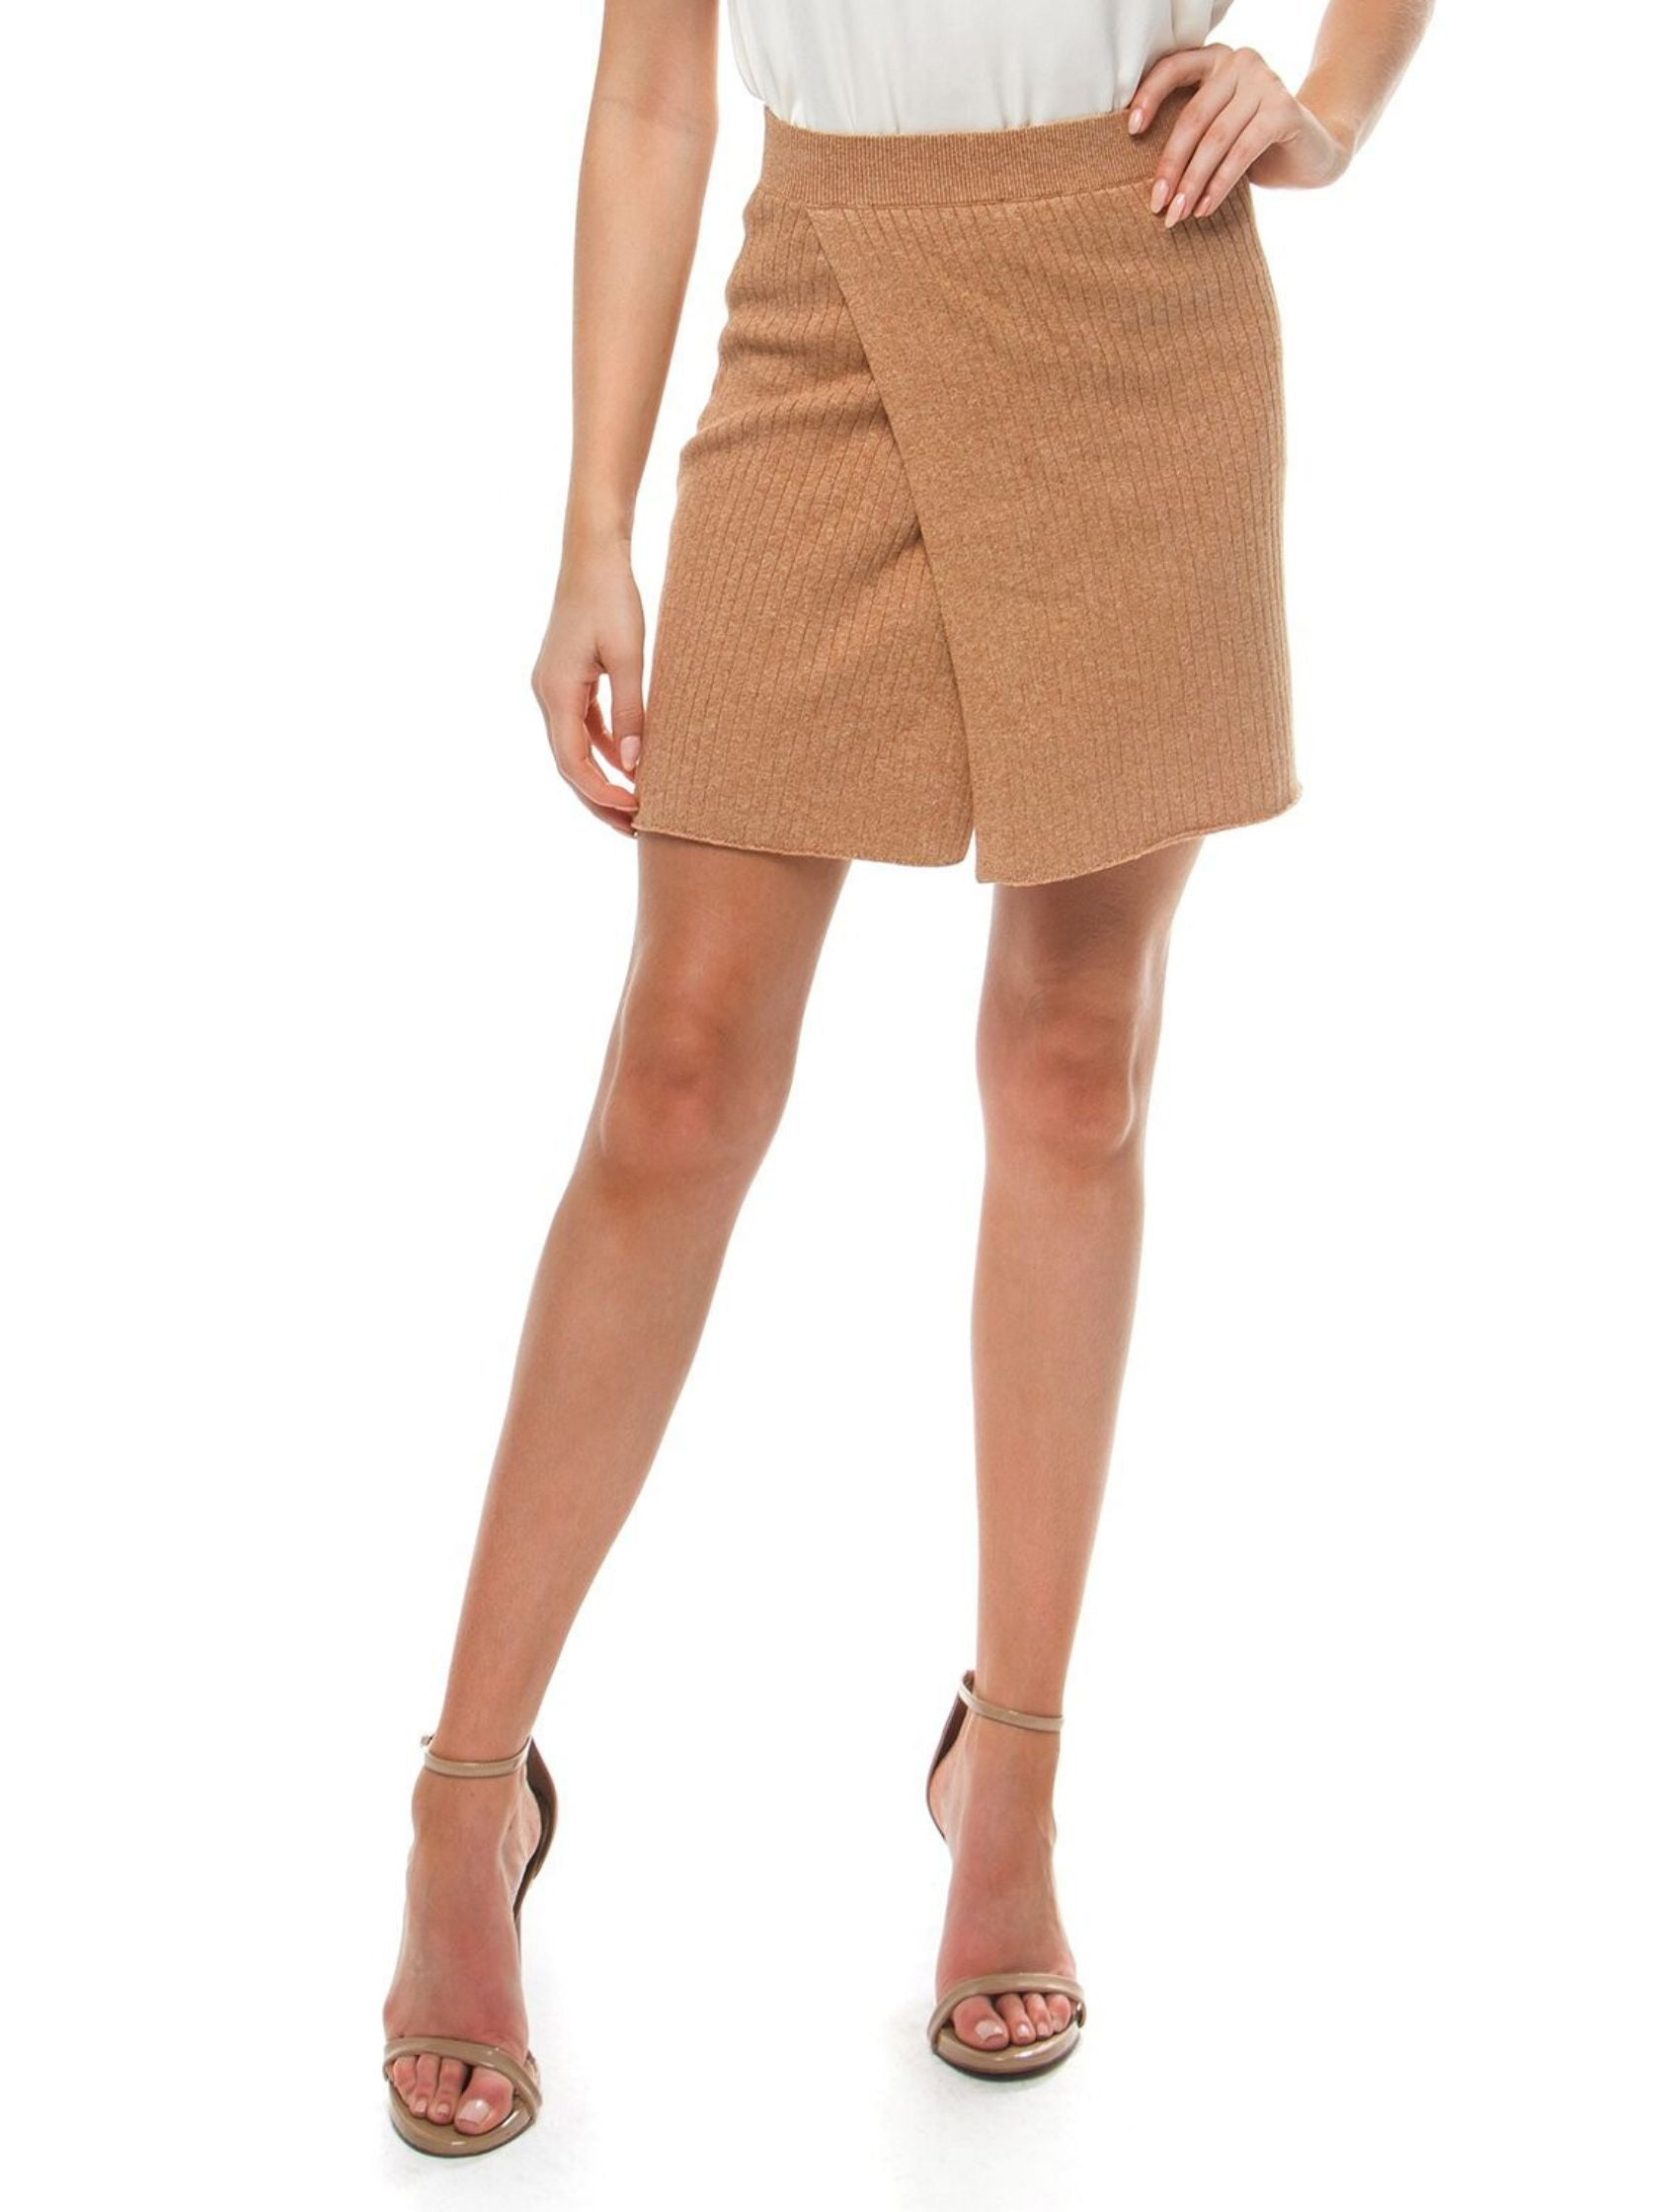 Girl outfit in a skirt rental from Free People called Mod Wrap Skirt